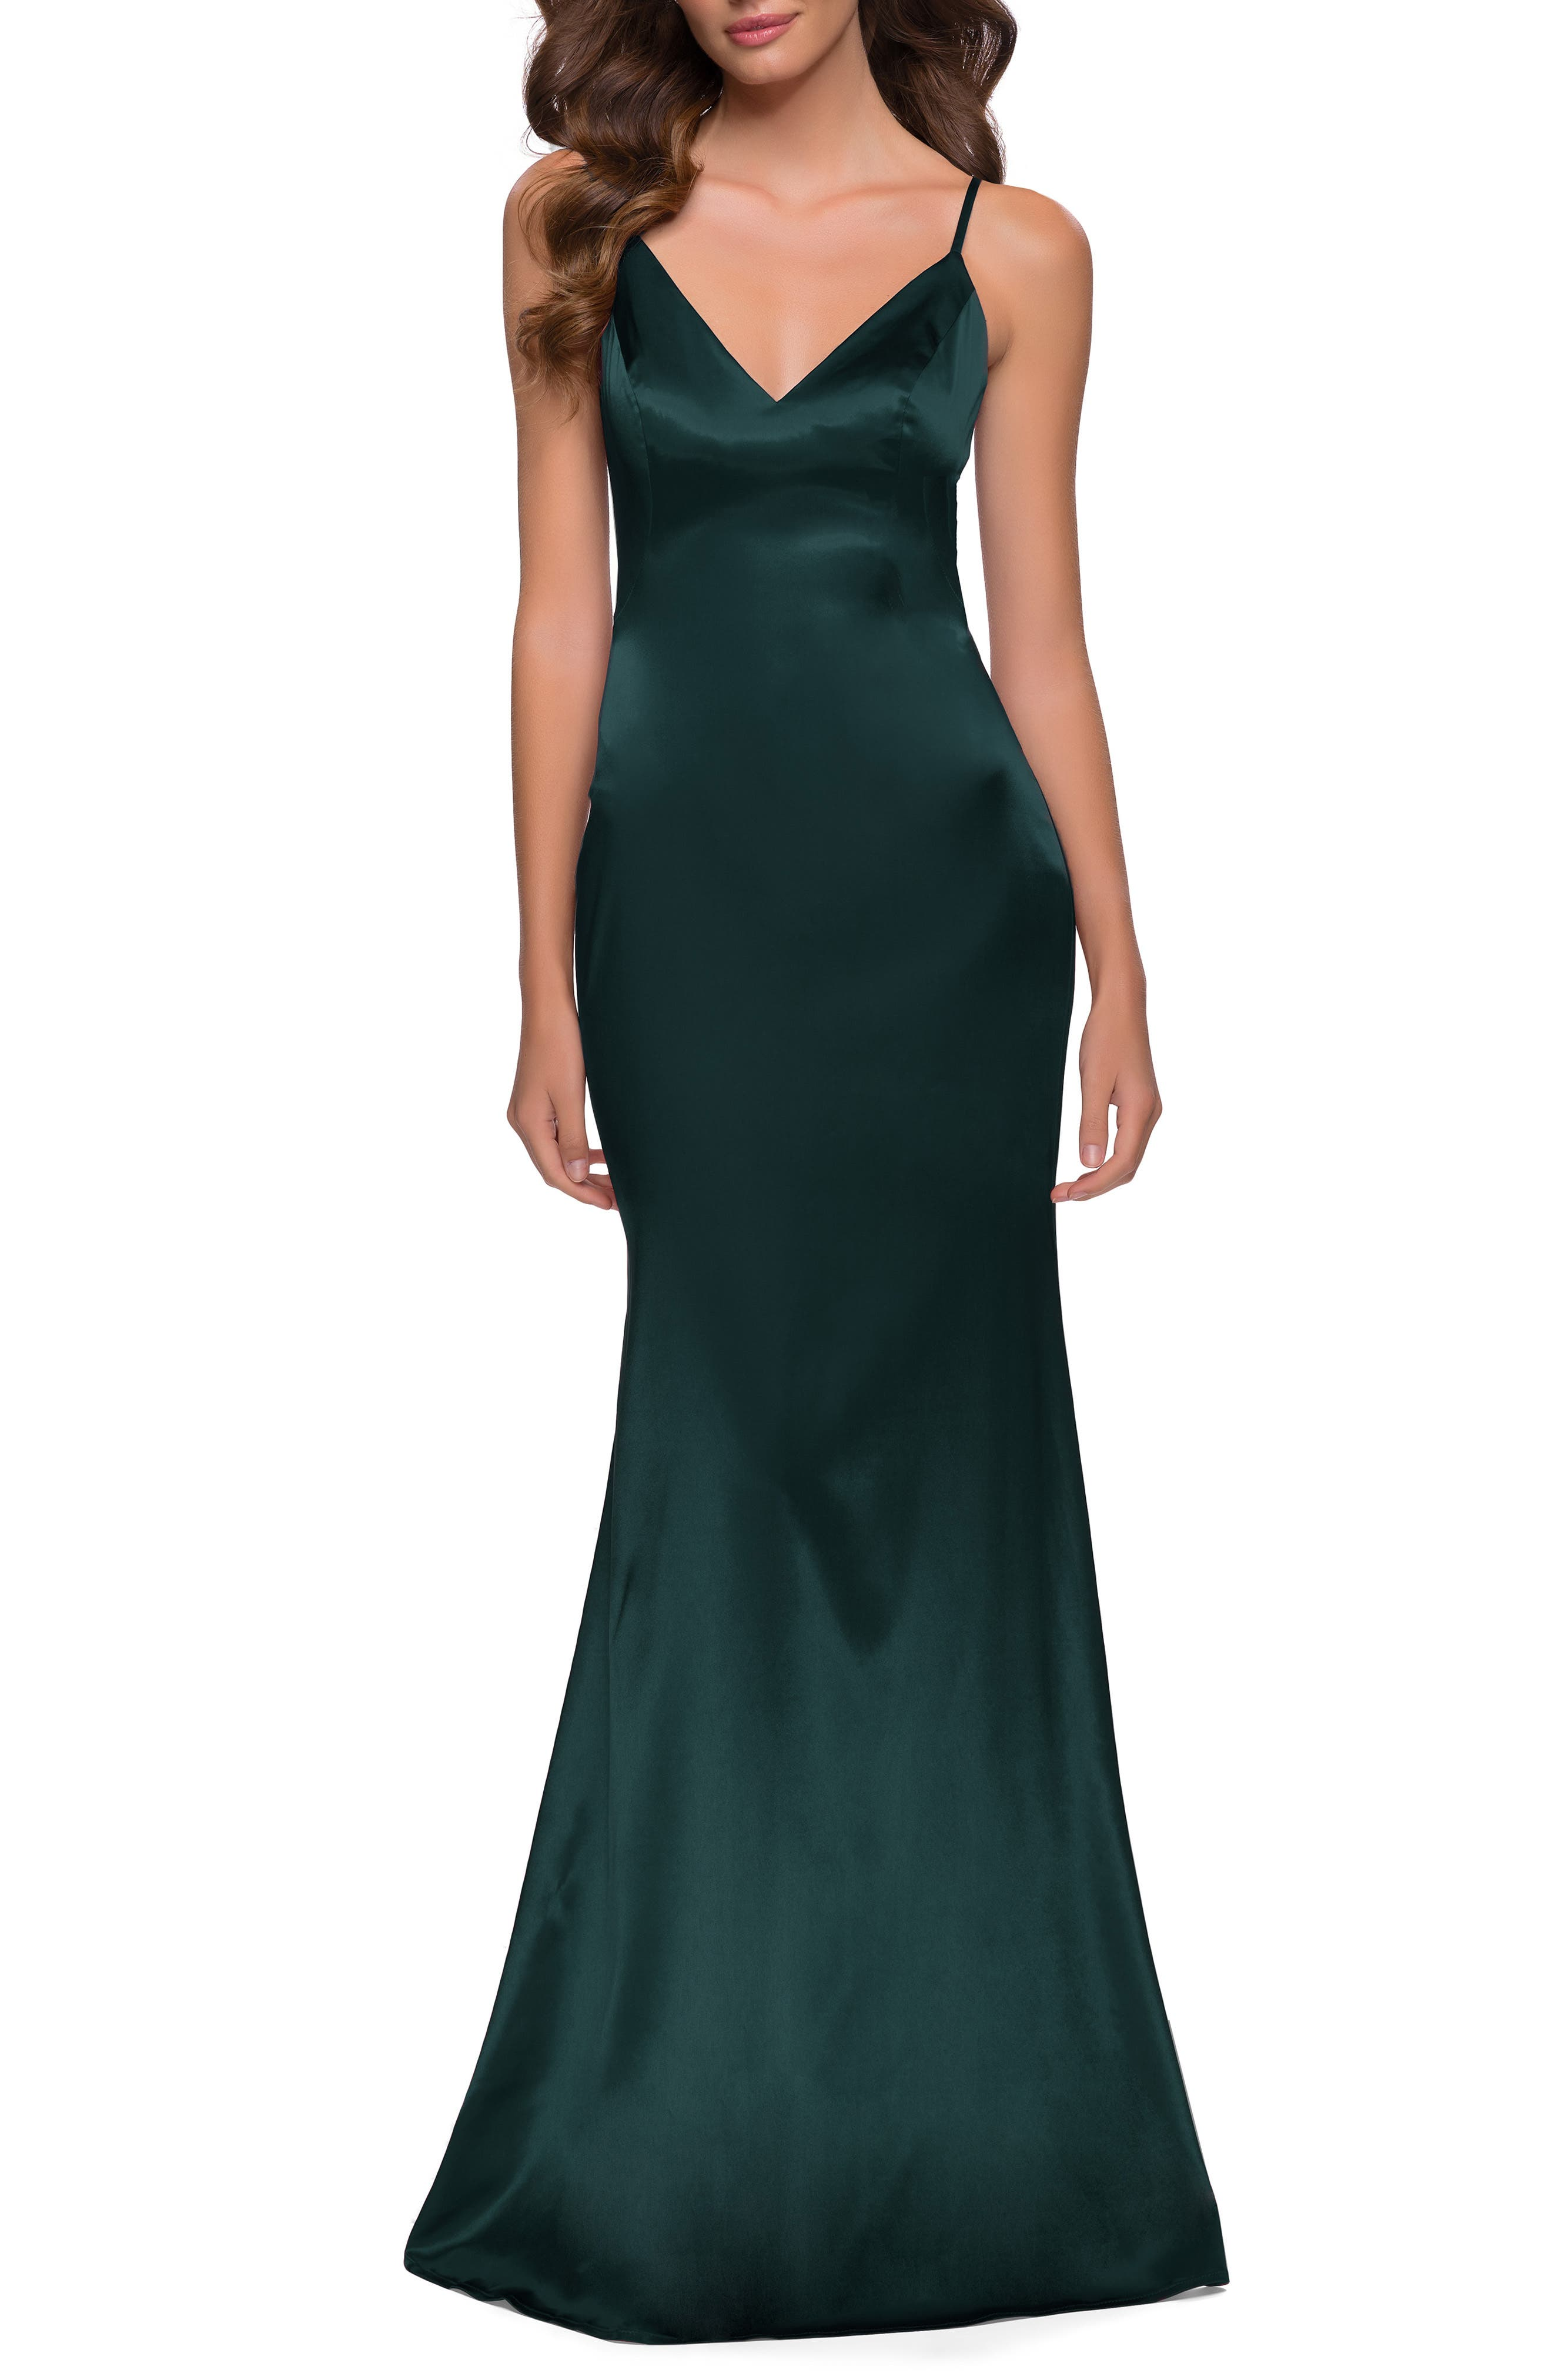 Set your style to stun in a slinky satin gown styled in a curve-skimming silhouette that slightly flares out for alluring movement with every step. Style Name: La Femme Stretch Satin Trumpet Gown. Style Number: 6155858. Available in stores.